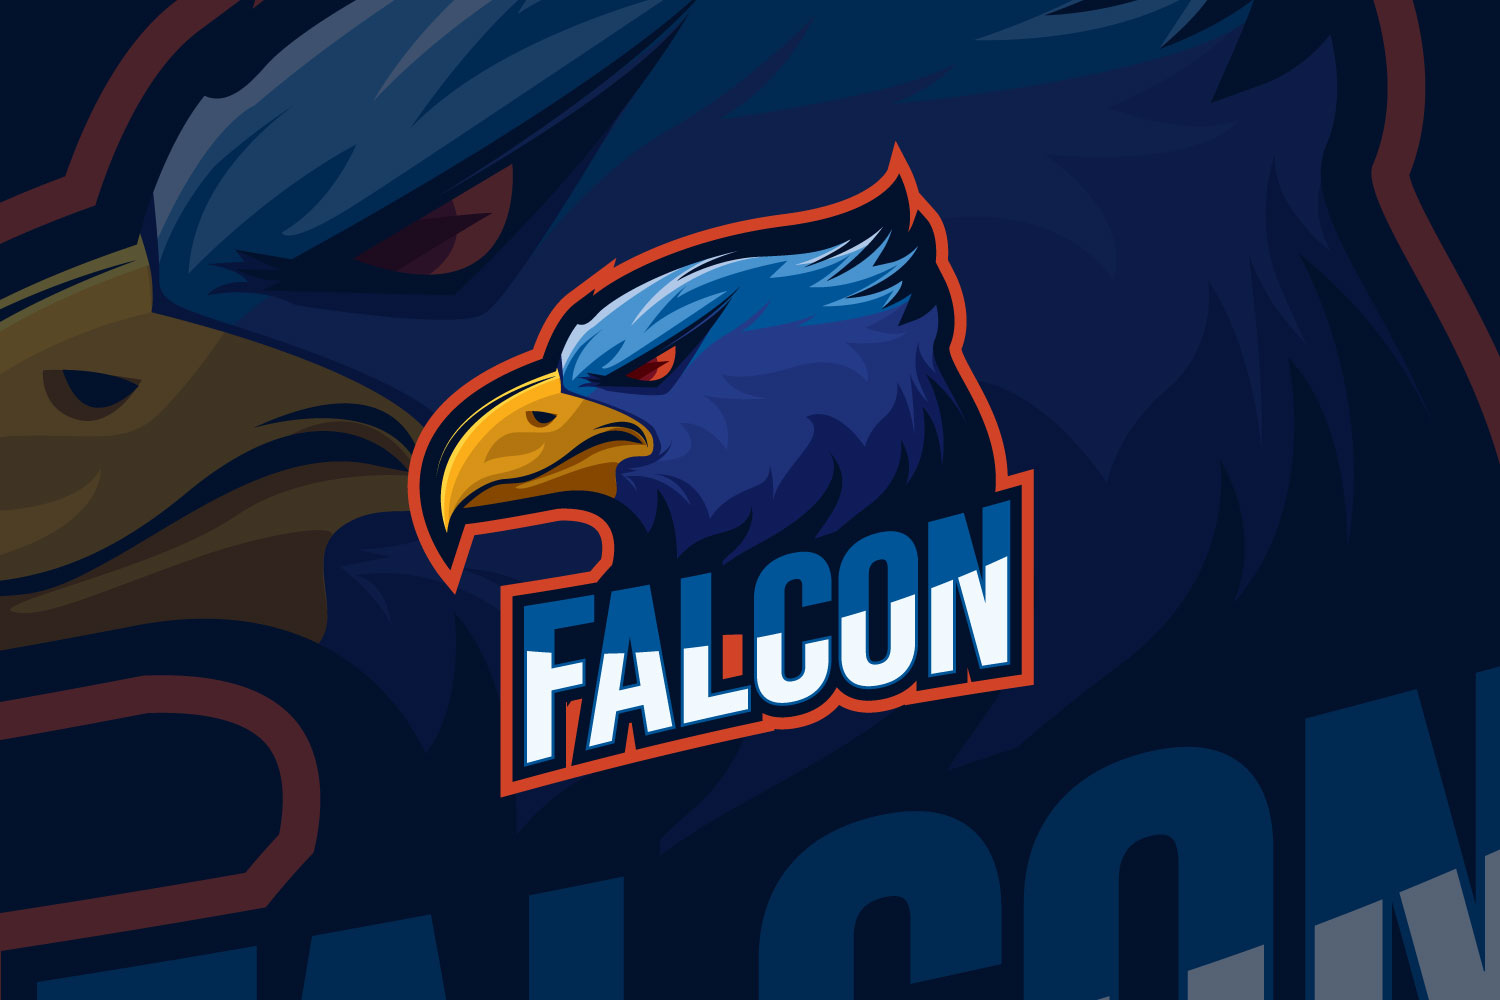 Download Free Falcon Eagle Esport Logo Design Graphic By Dwikrisdiantoro9 for Cricut Explore, Silhouette and other cutting machines.